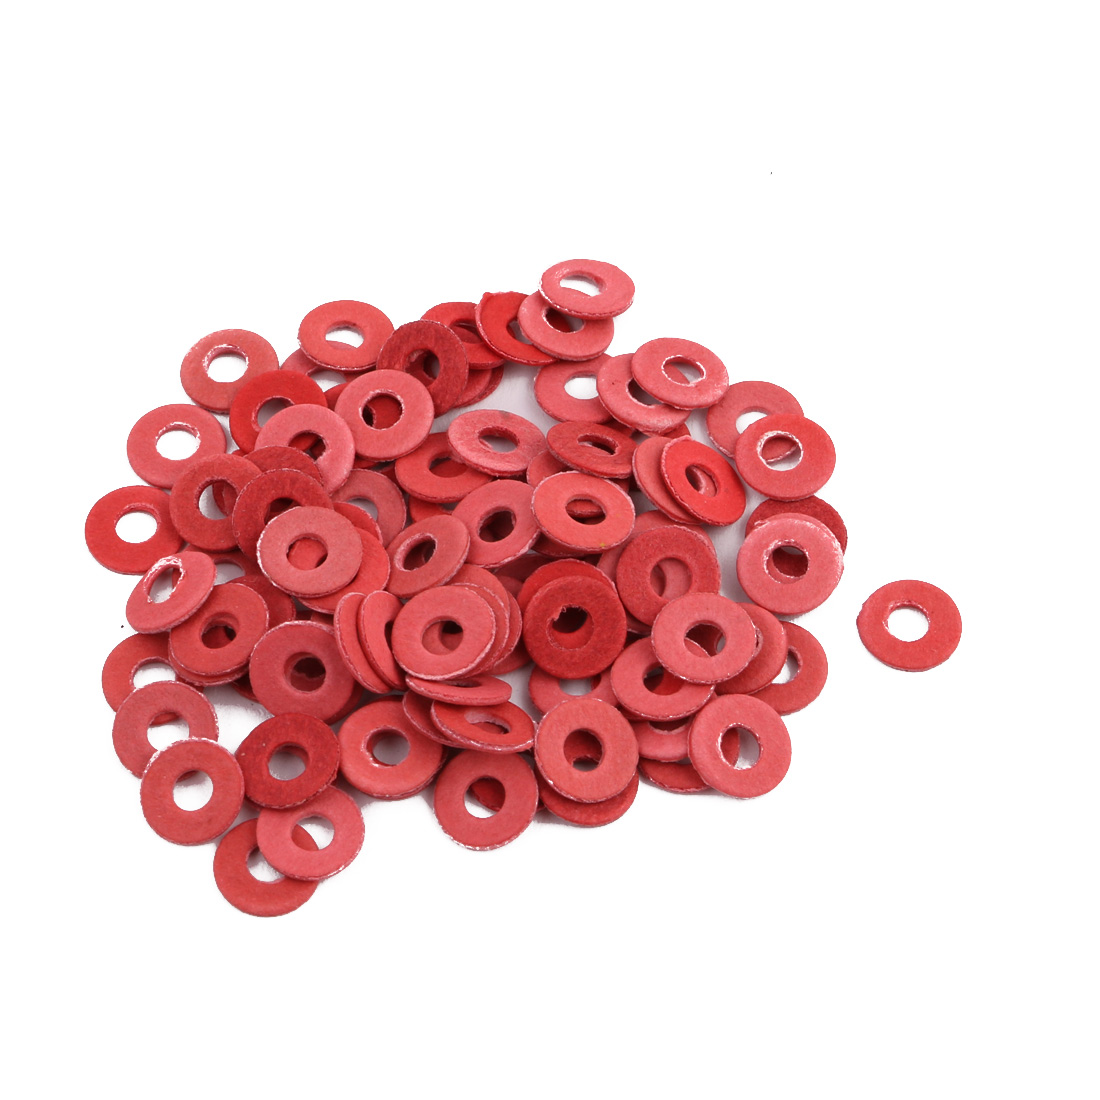 M3 x 8mm x 1mm Nylon Flat Insulating Washers Gaskets Spacers Fastener 100PCS